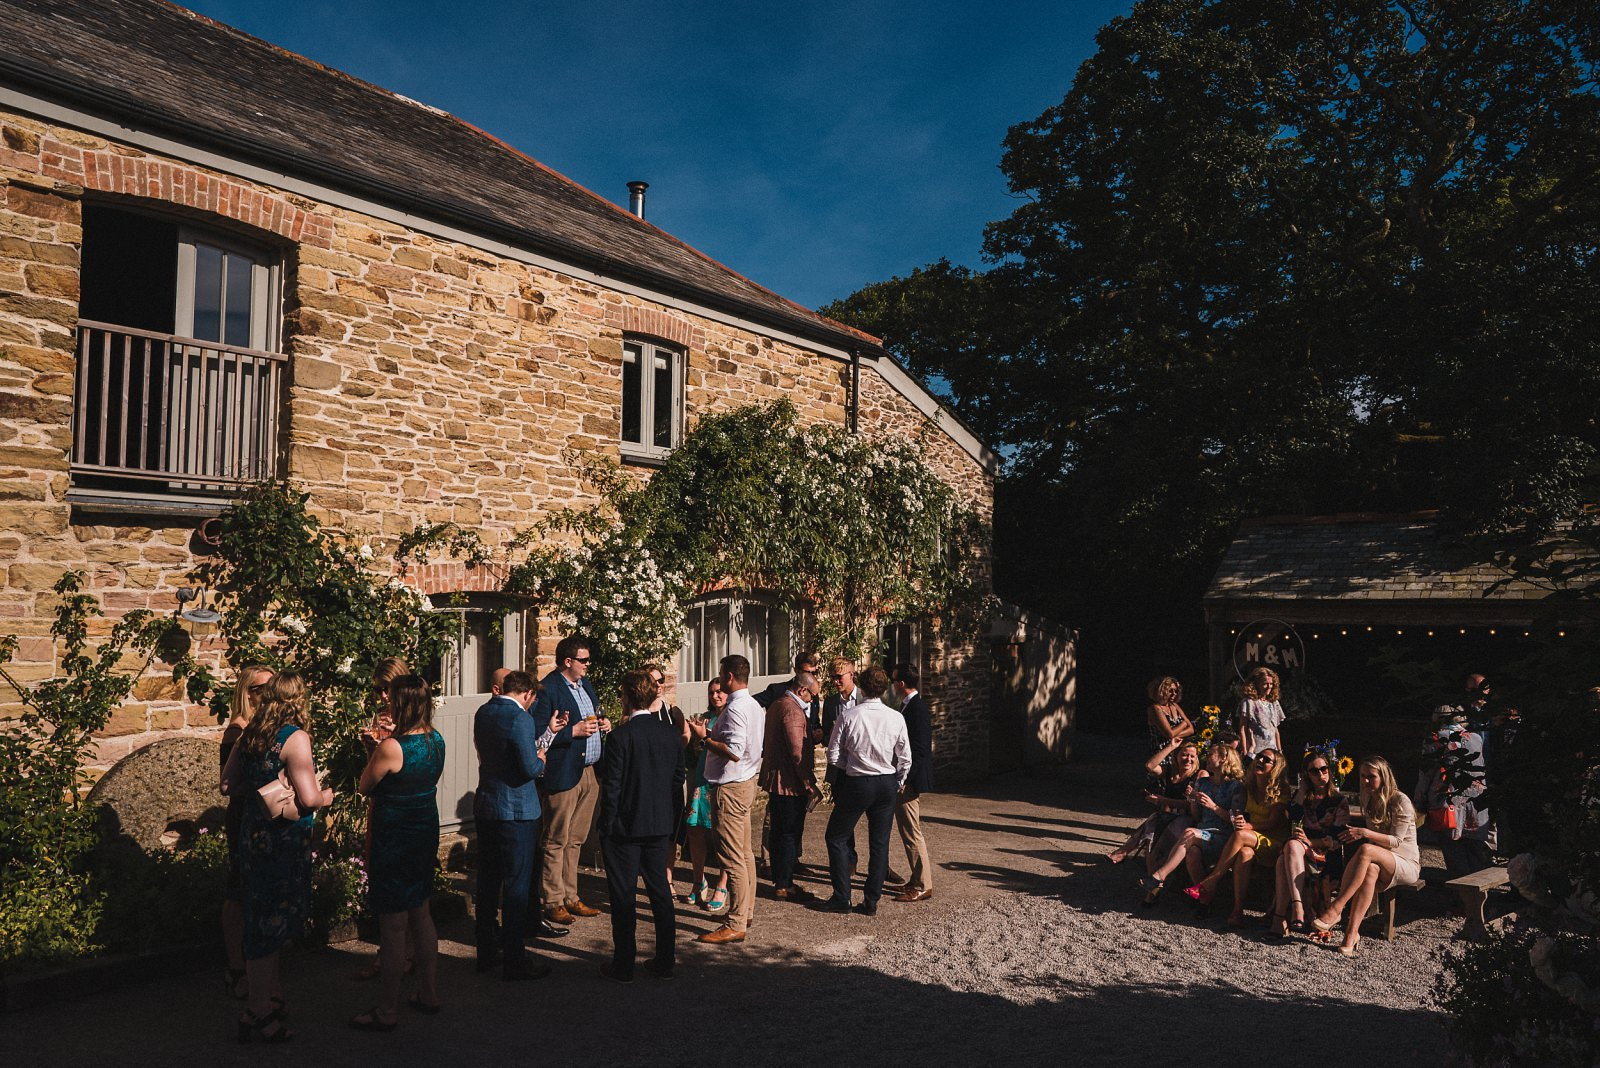 Wedding guests enjoying the sun in the courtyard at Nancarrow Farm